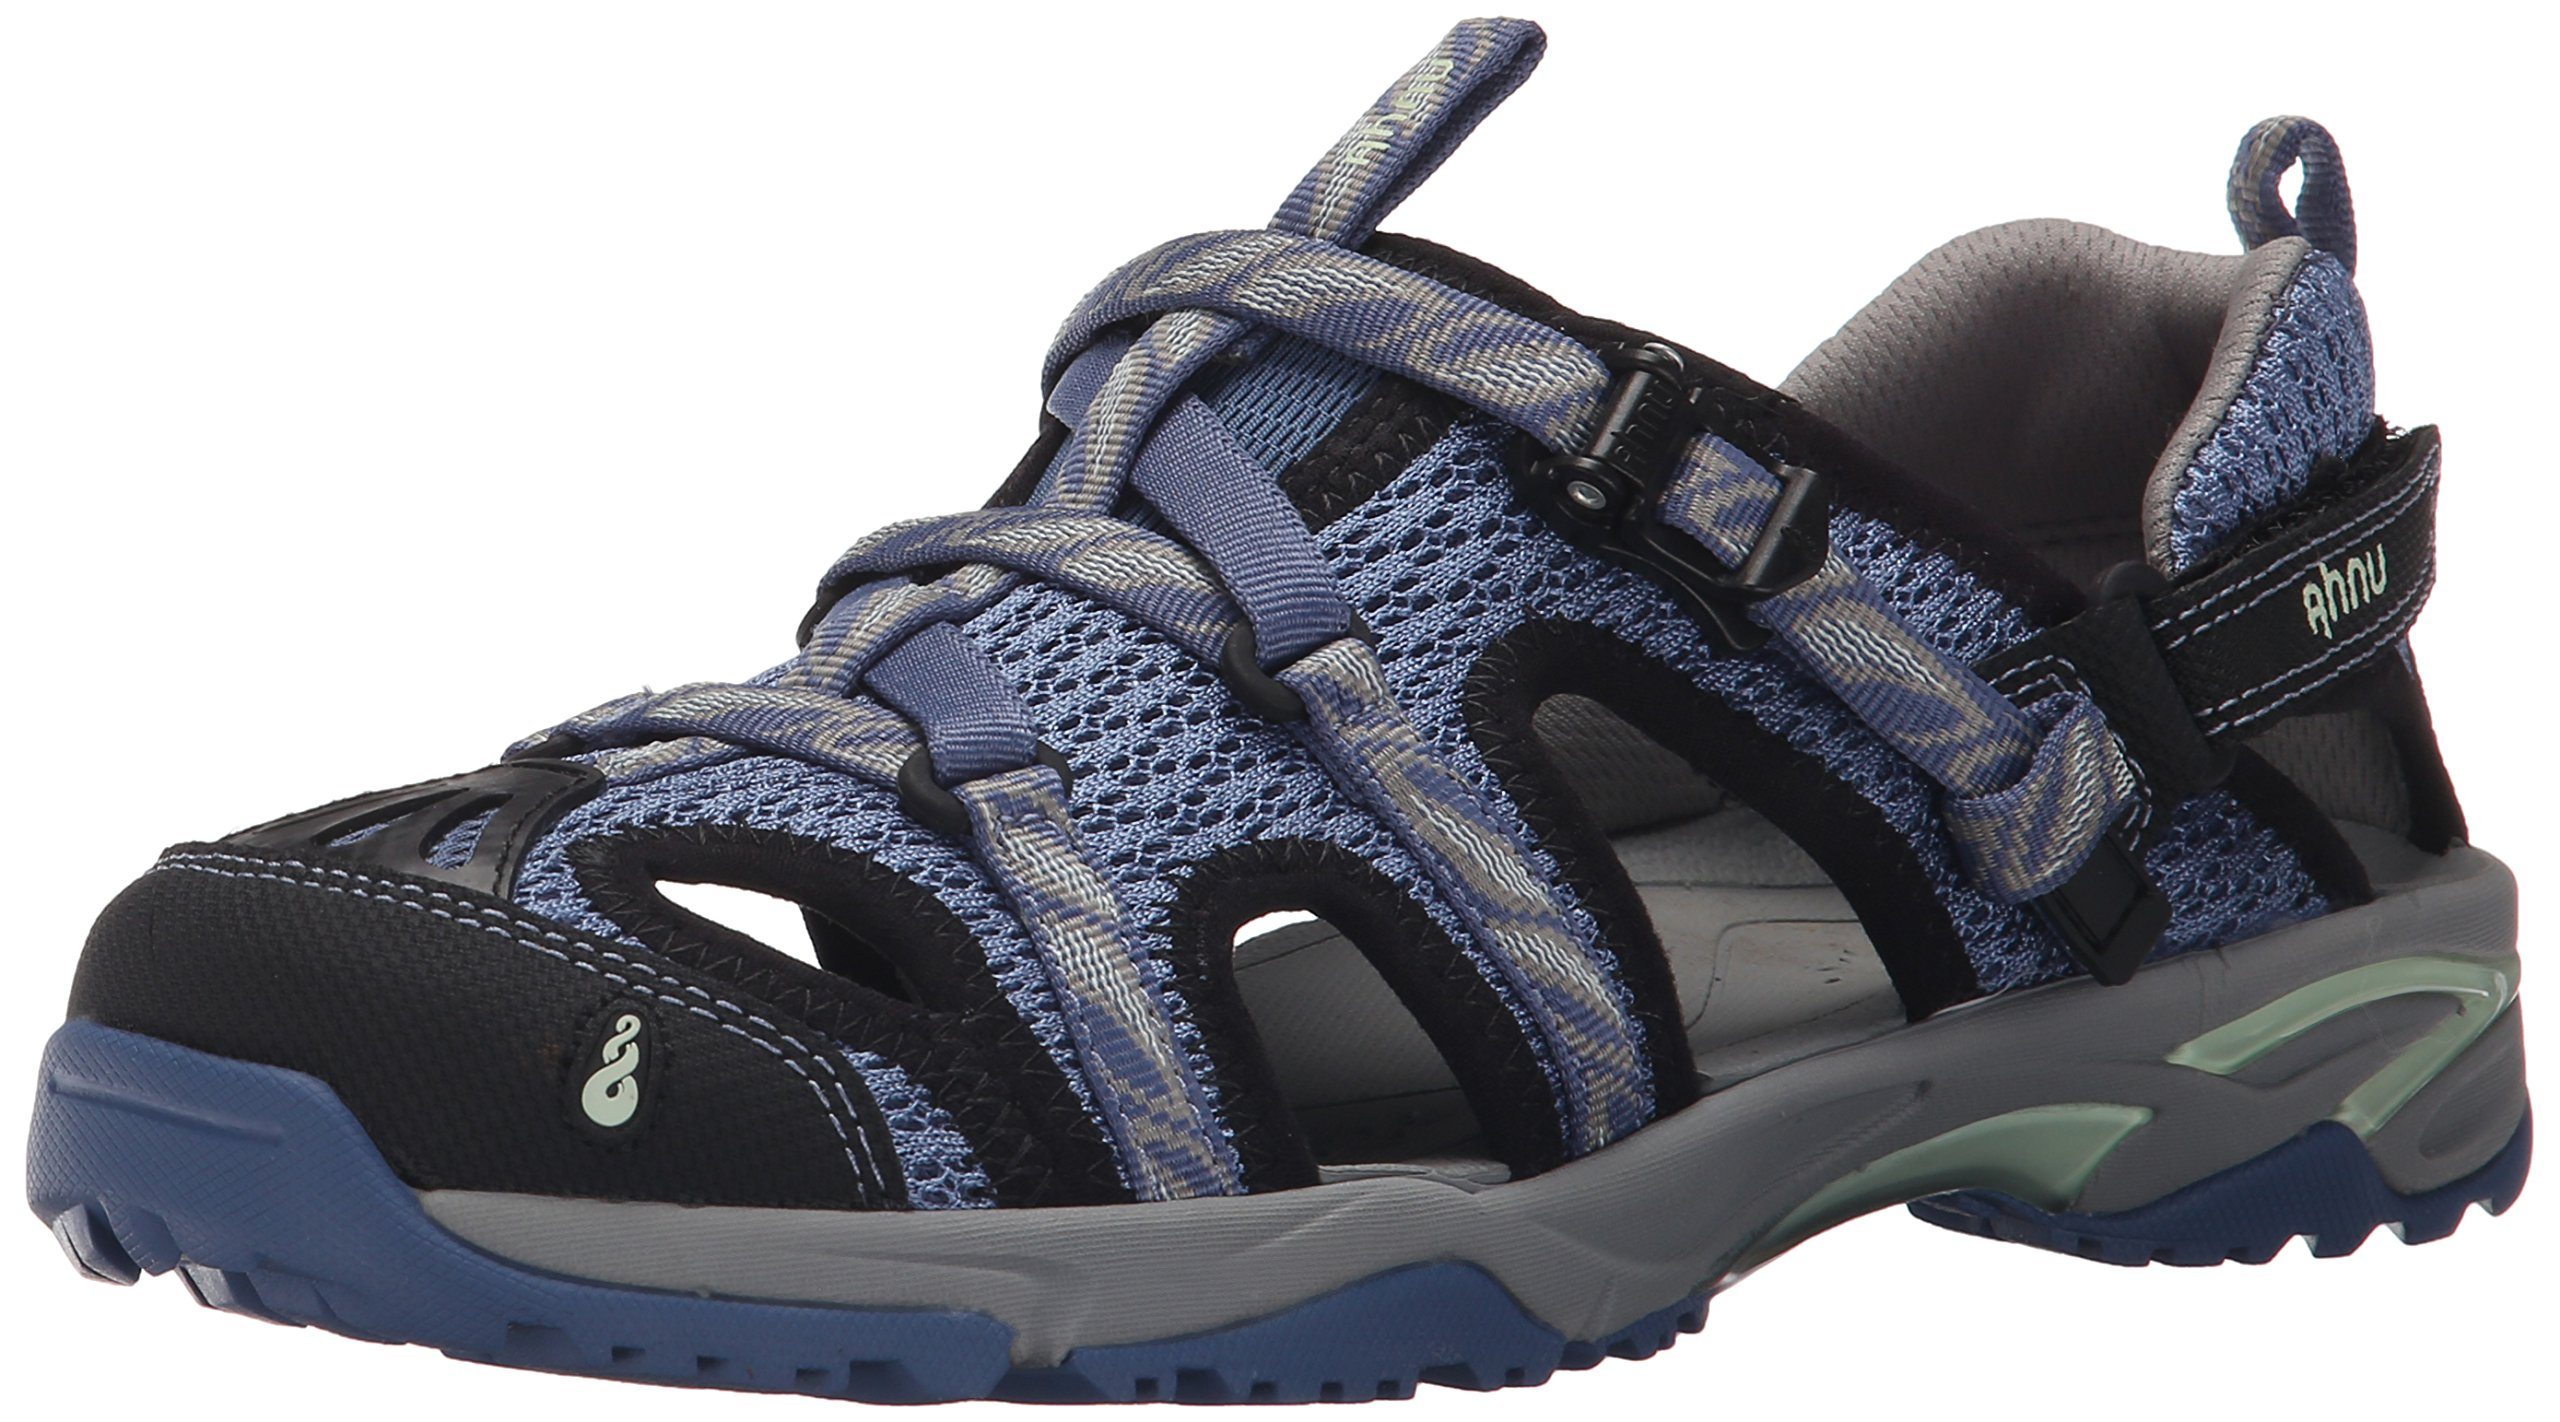 Ahnu Women's Tilden V Sport Sandal, Leaf Regatta Blue, 7 M US by Ahnu